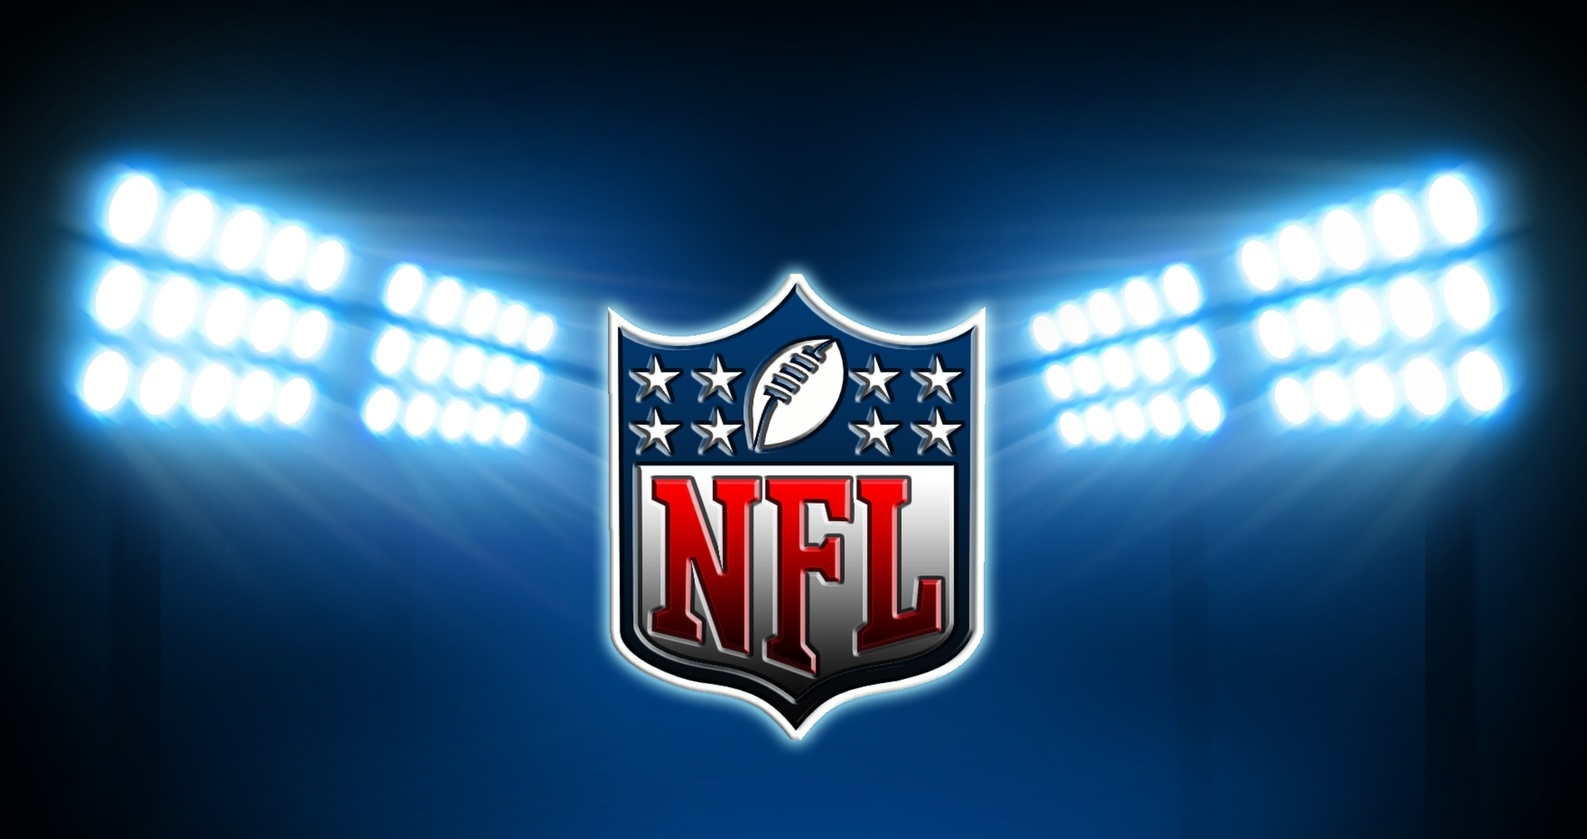 NFL Wallpaper 1587x839